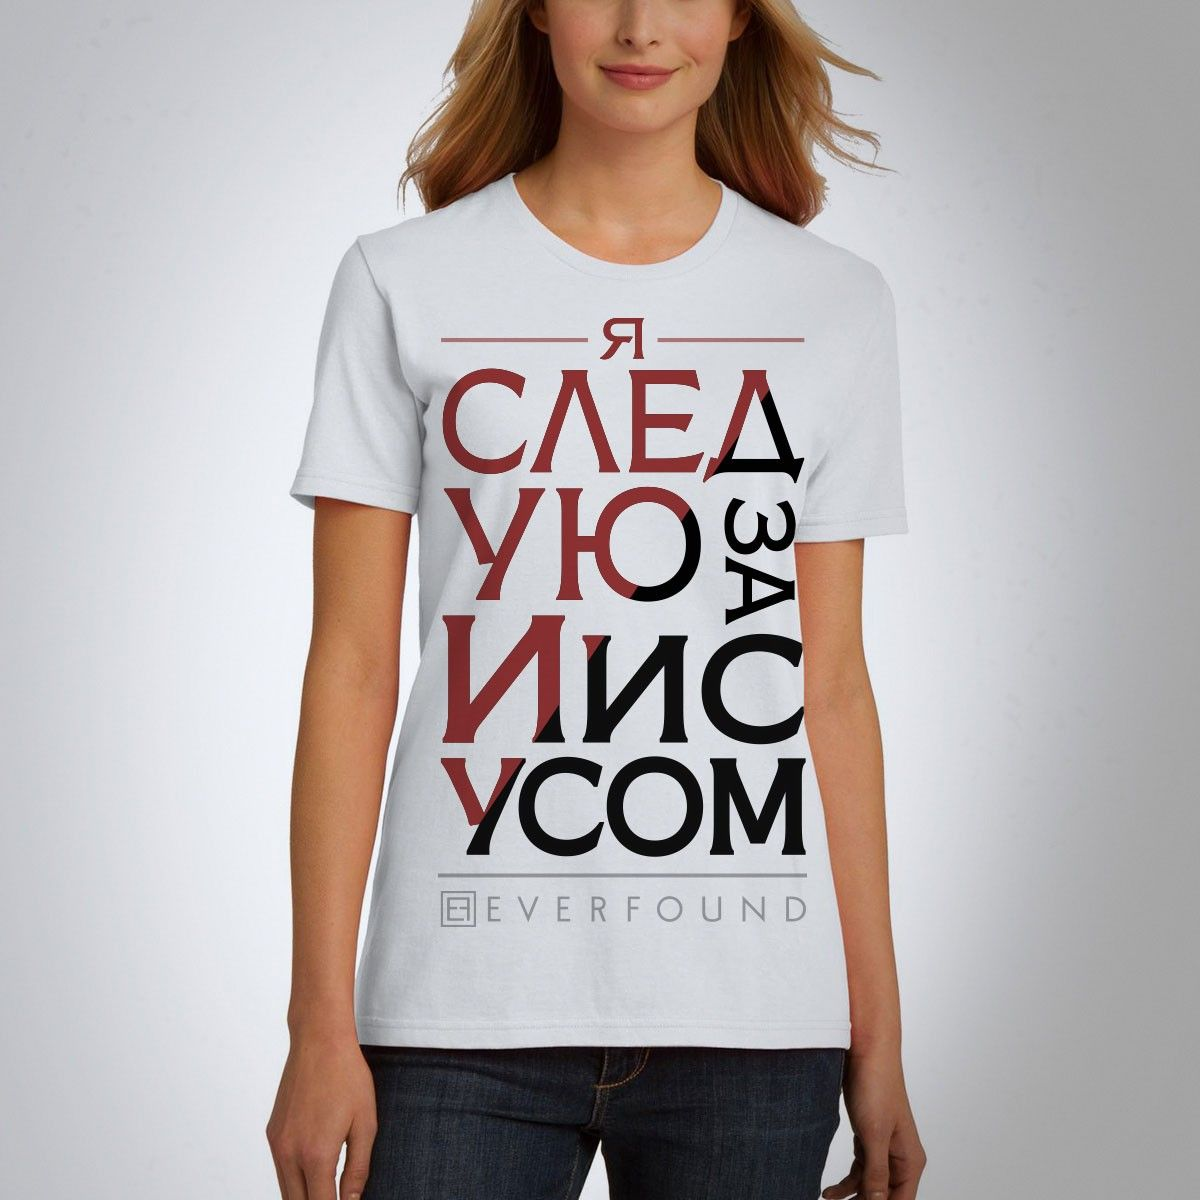 Check out I Follow Jesus T-Shirt from Everfound at the Warner Music Store!